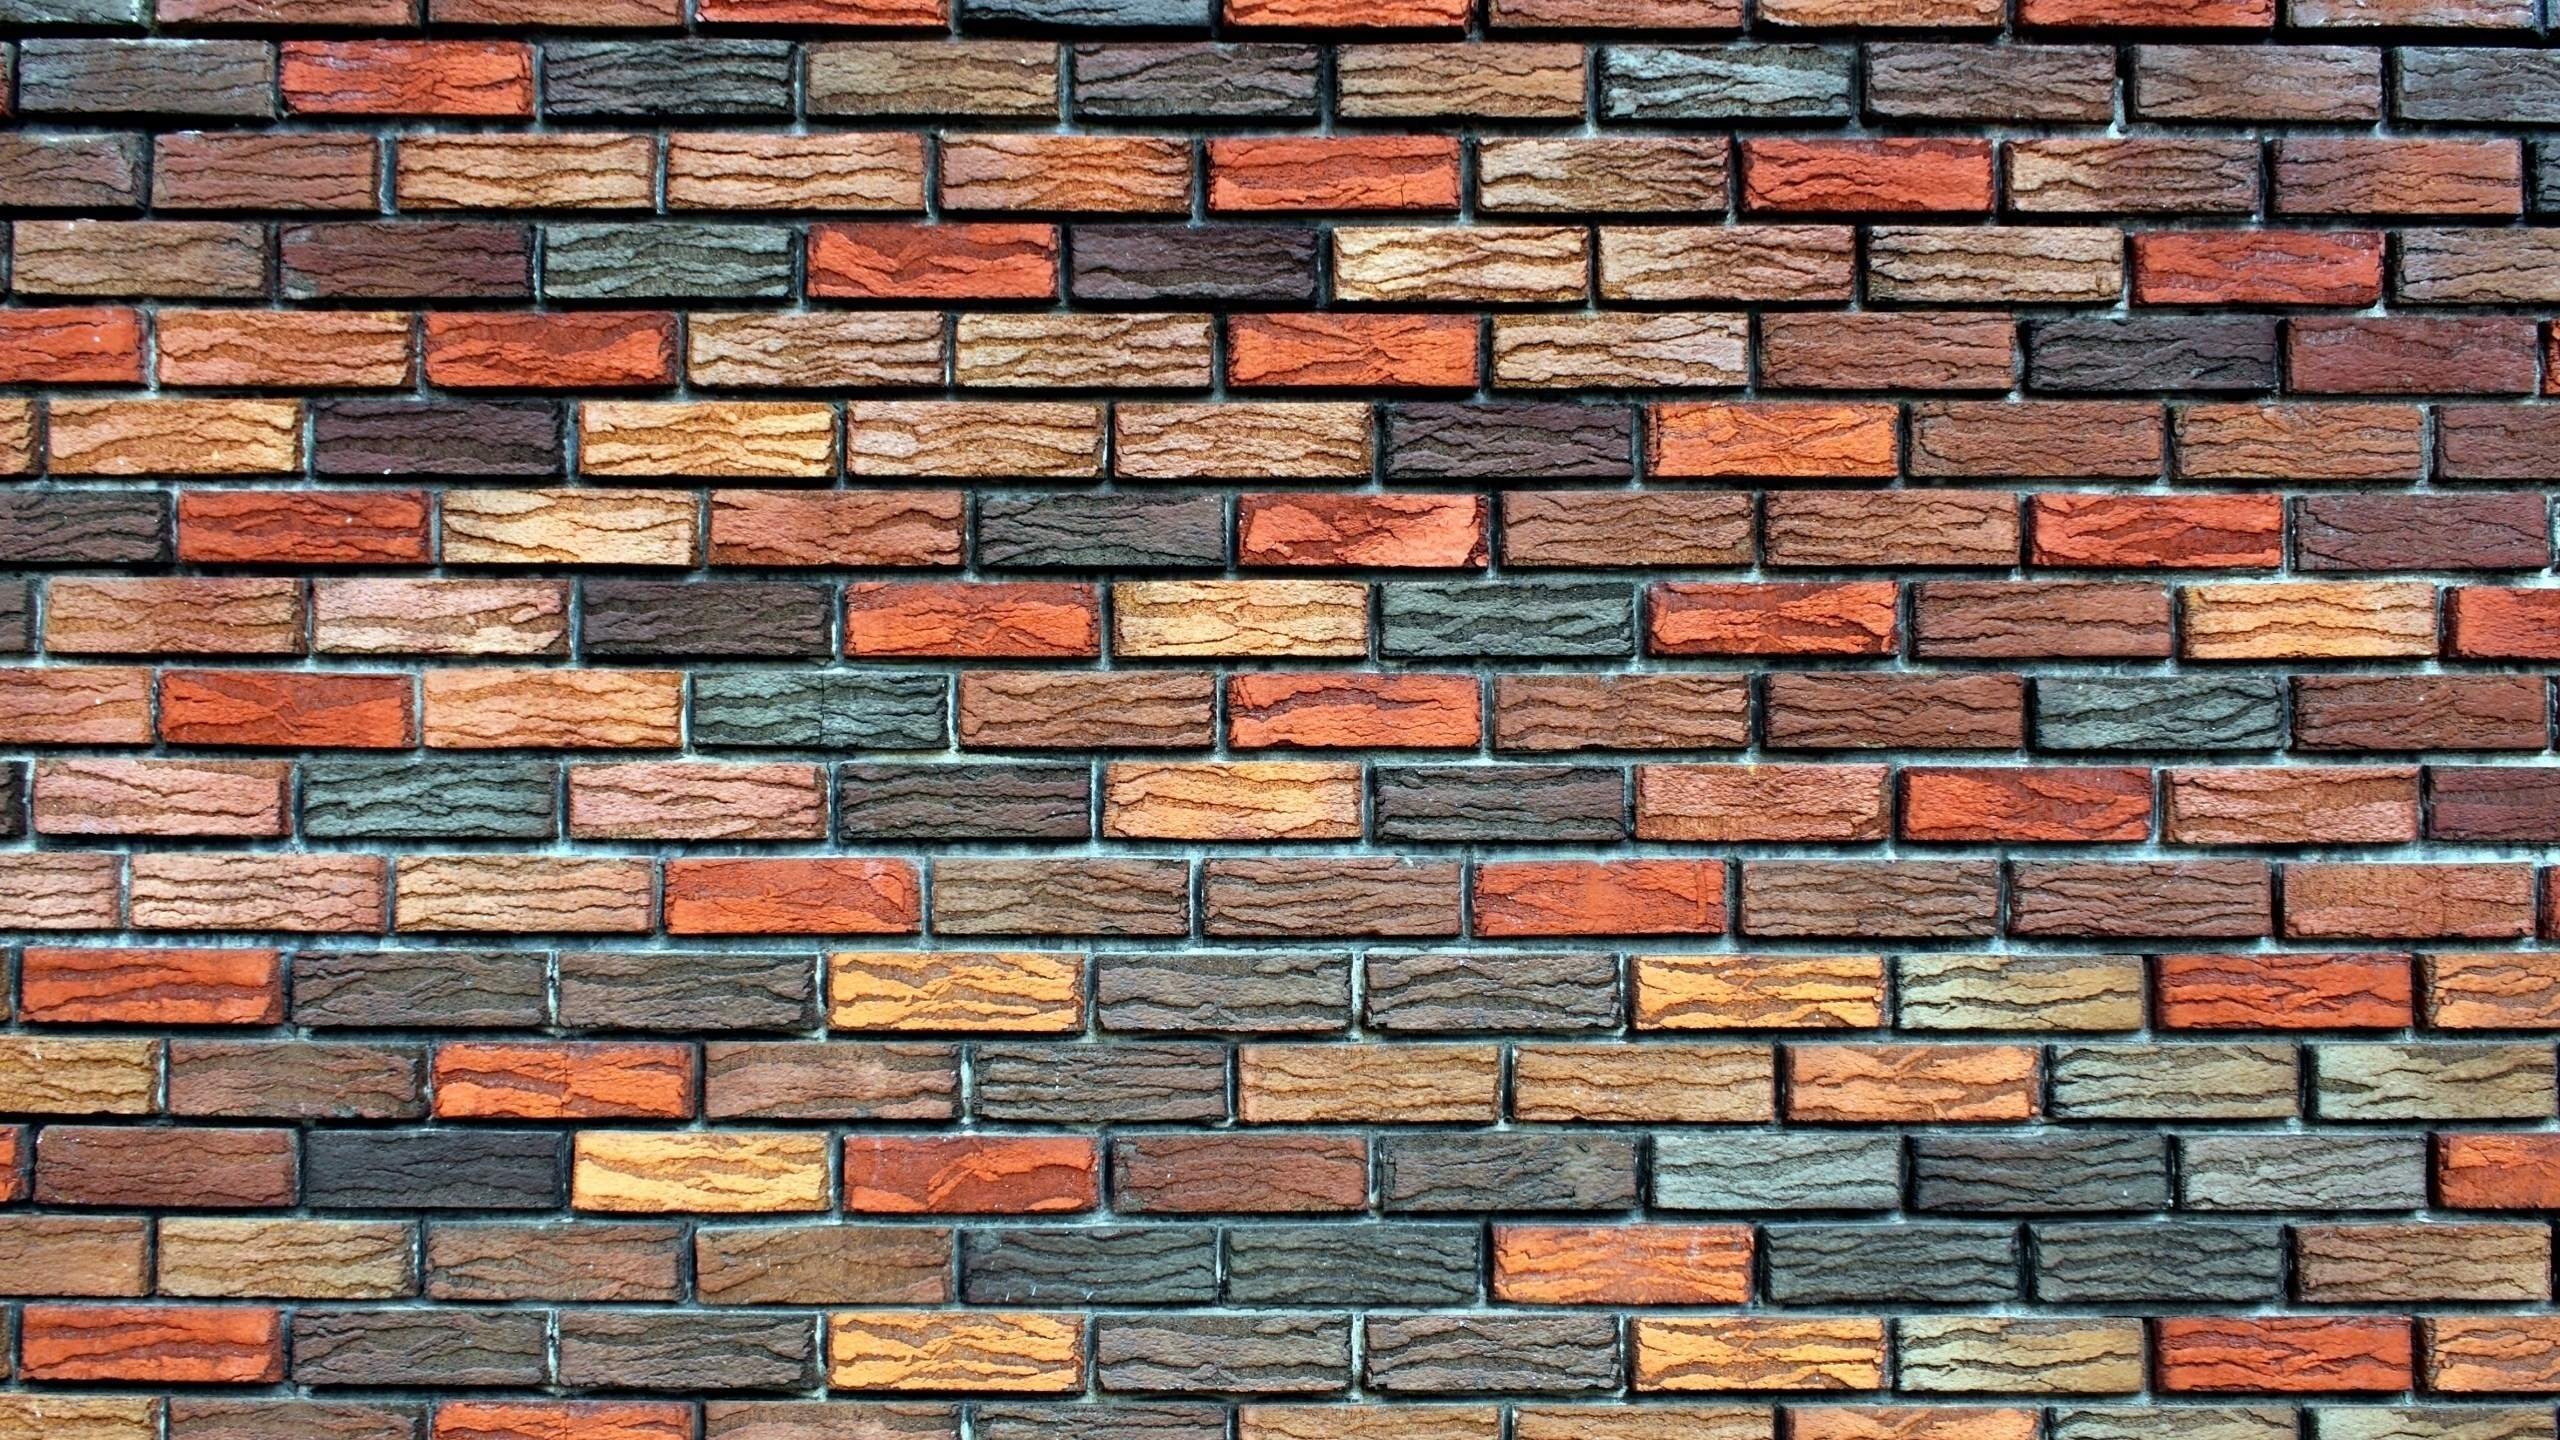 Brick Wall Background Free Powerpoint Backgrounds Slidebackground